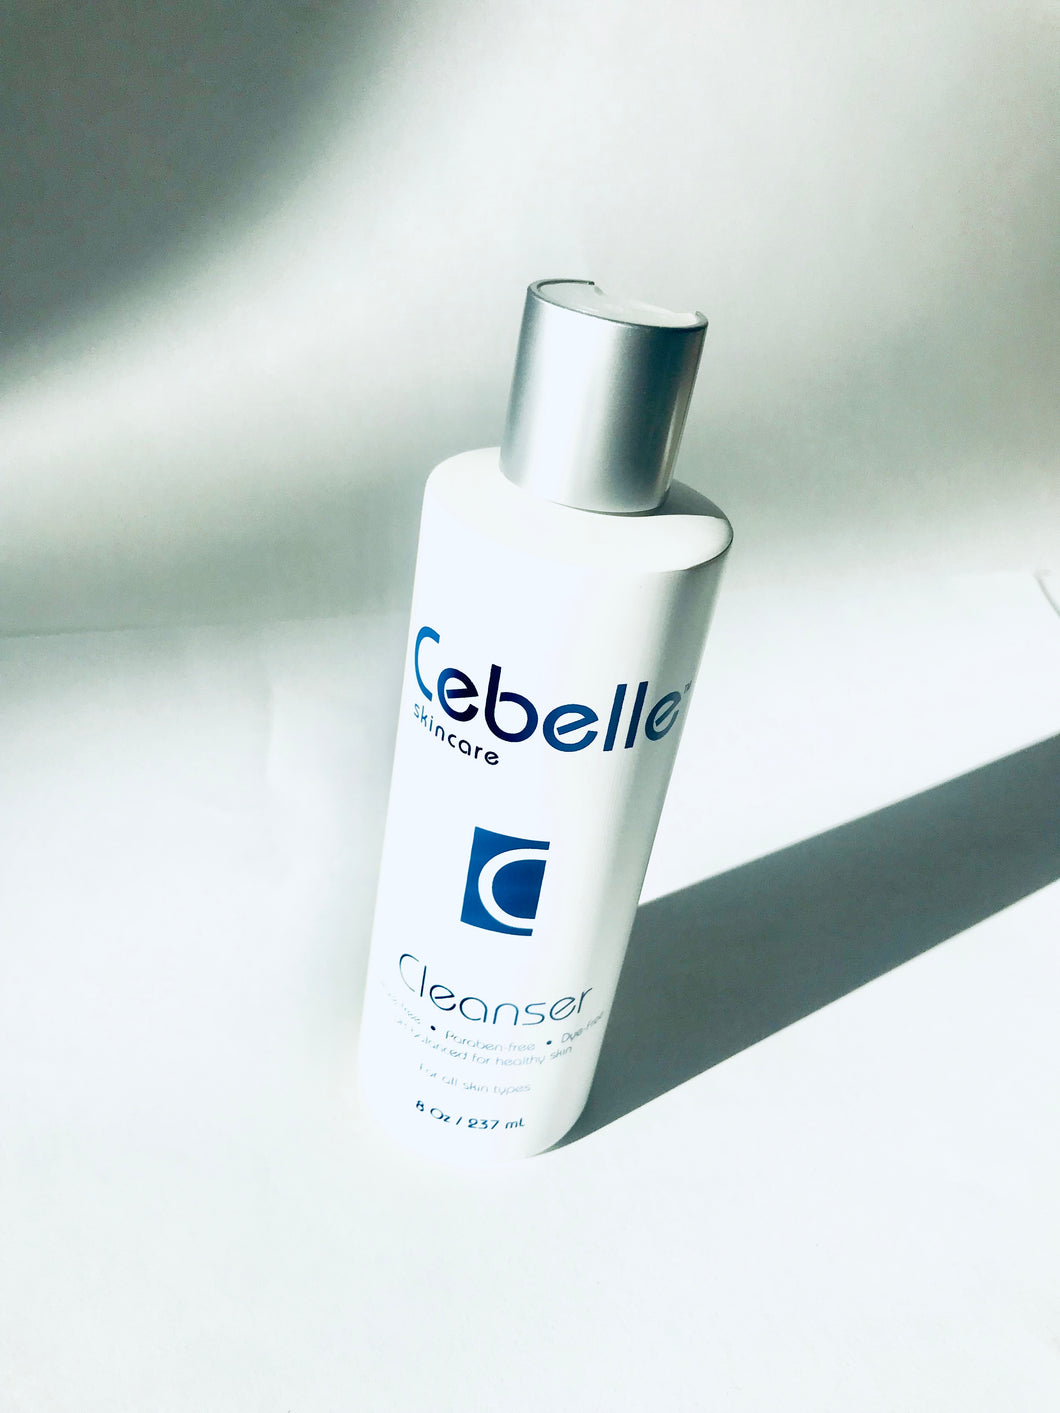 Cebelle Facial Cleanser